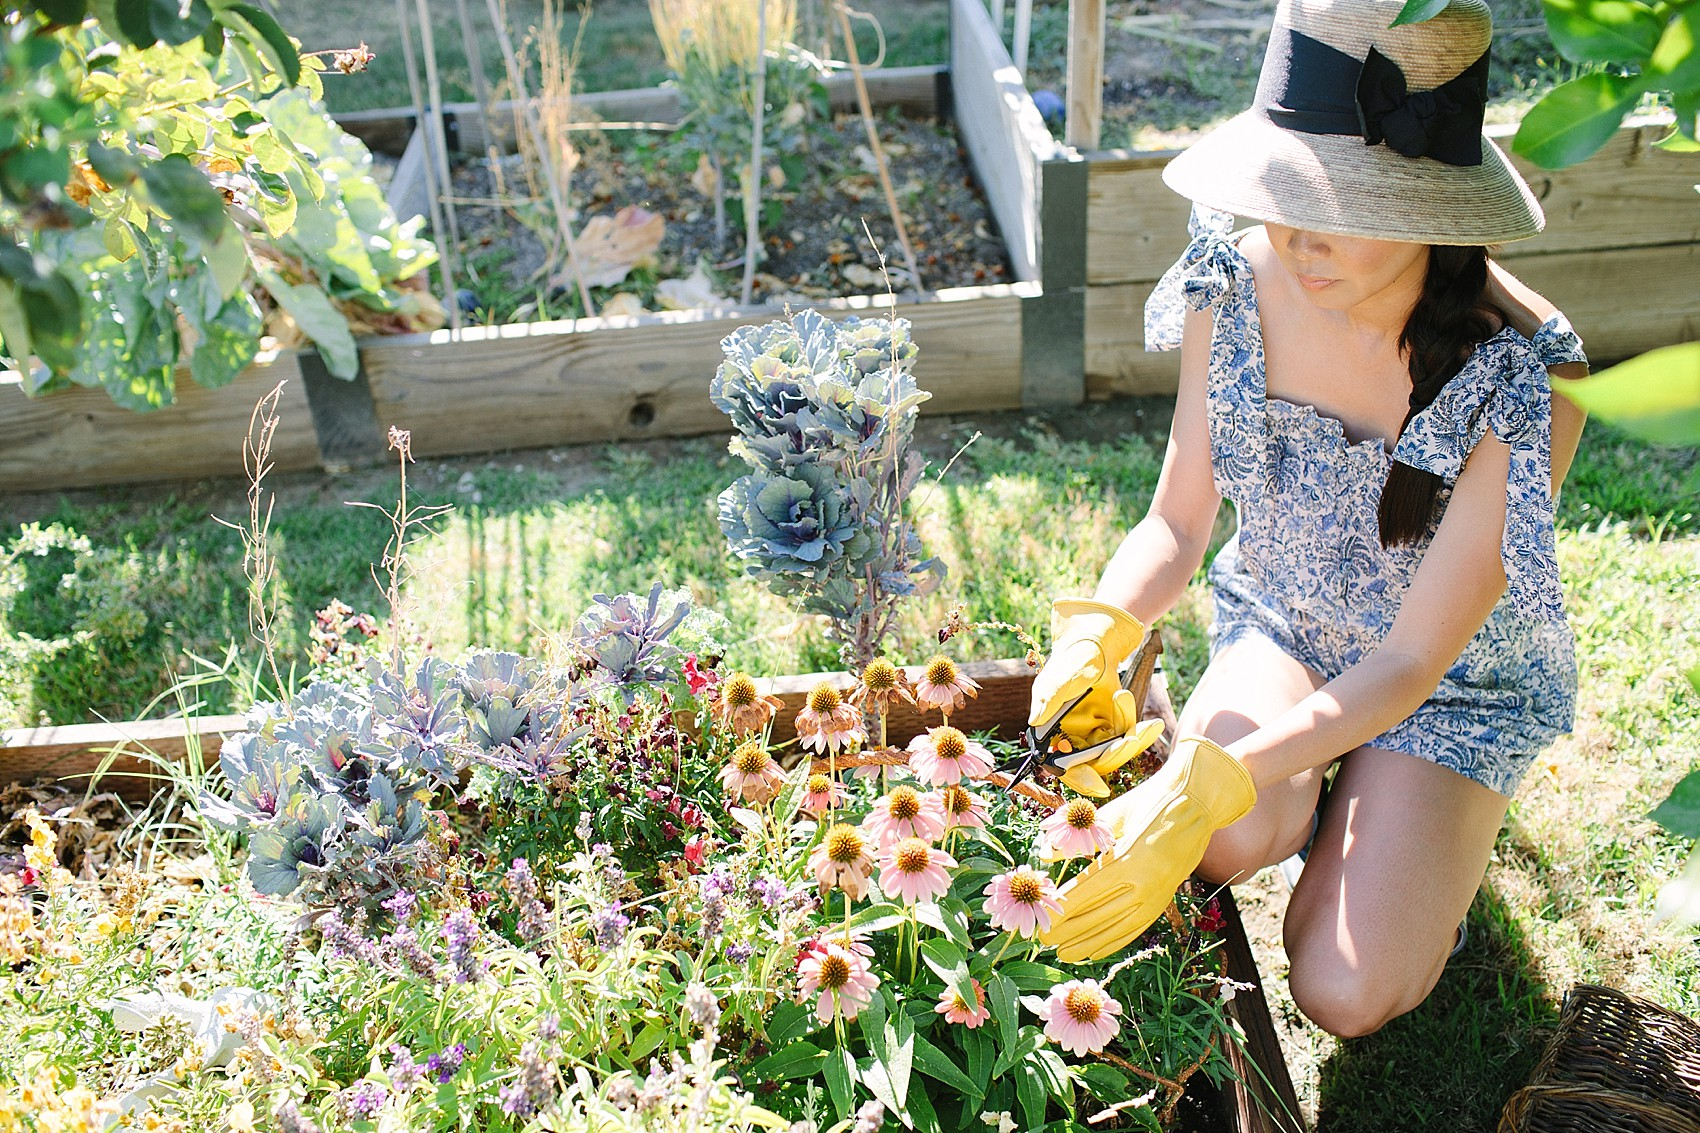 Backyard Pruning + Storing Garden Tools | Diana Elizabeth